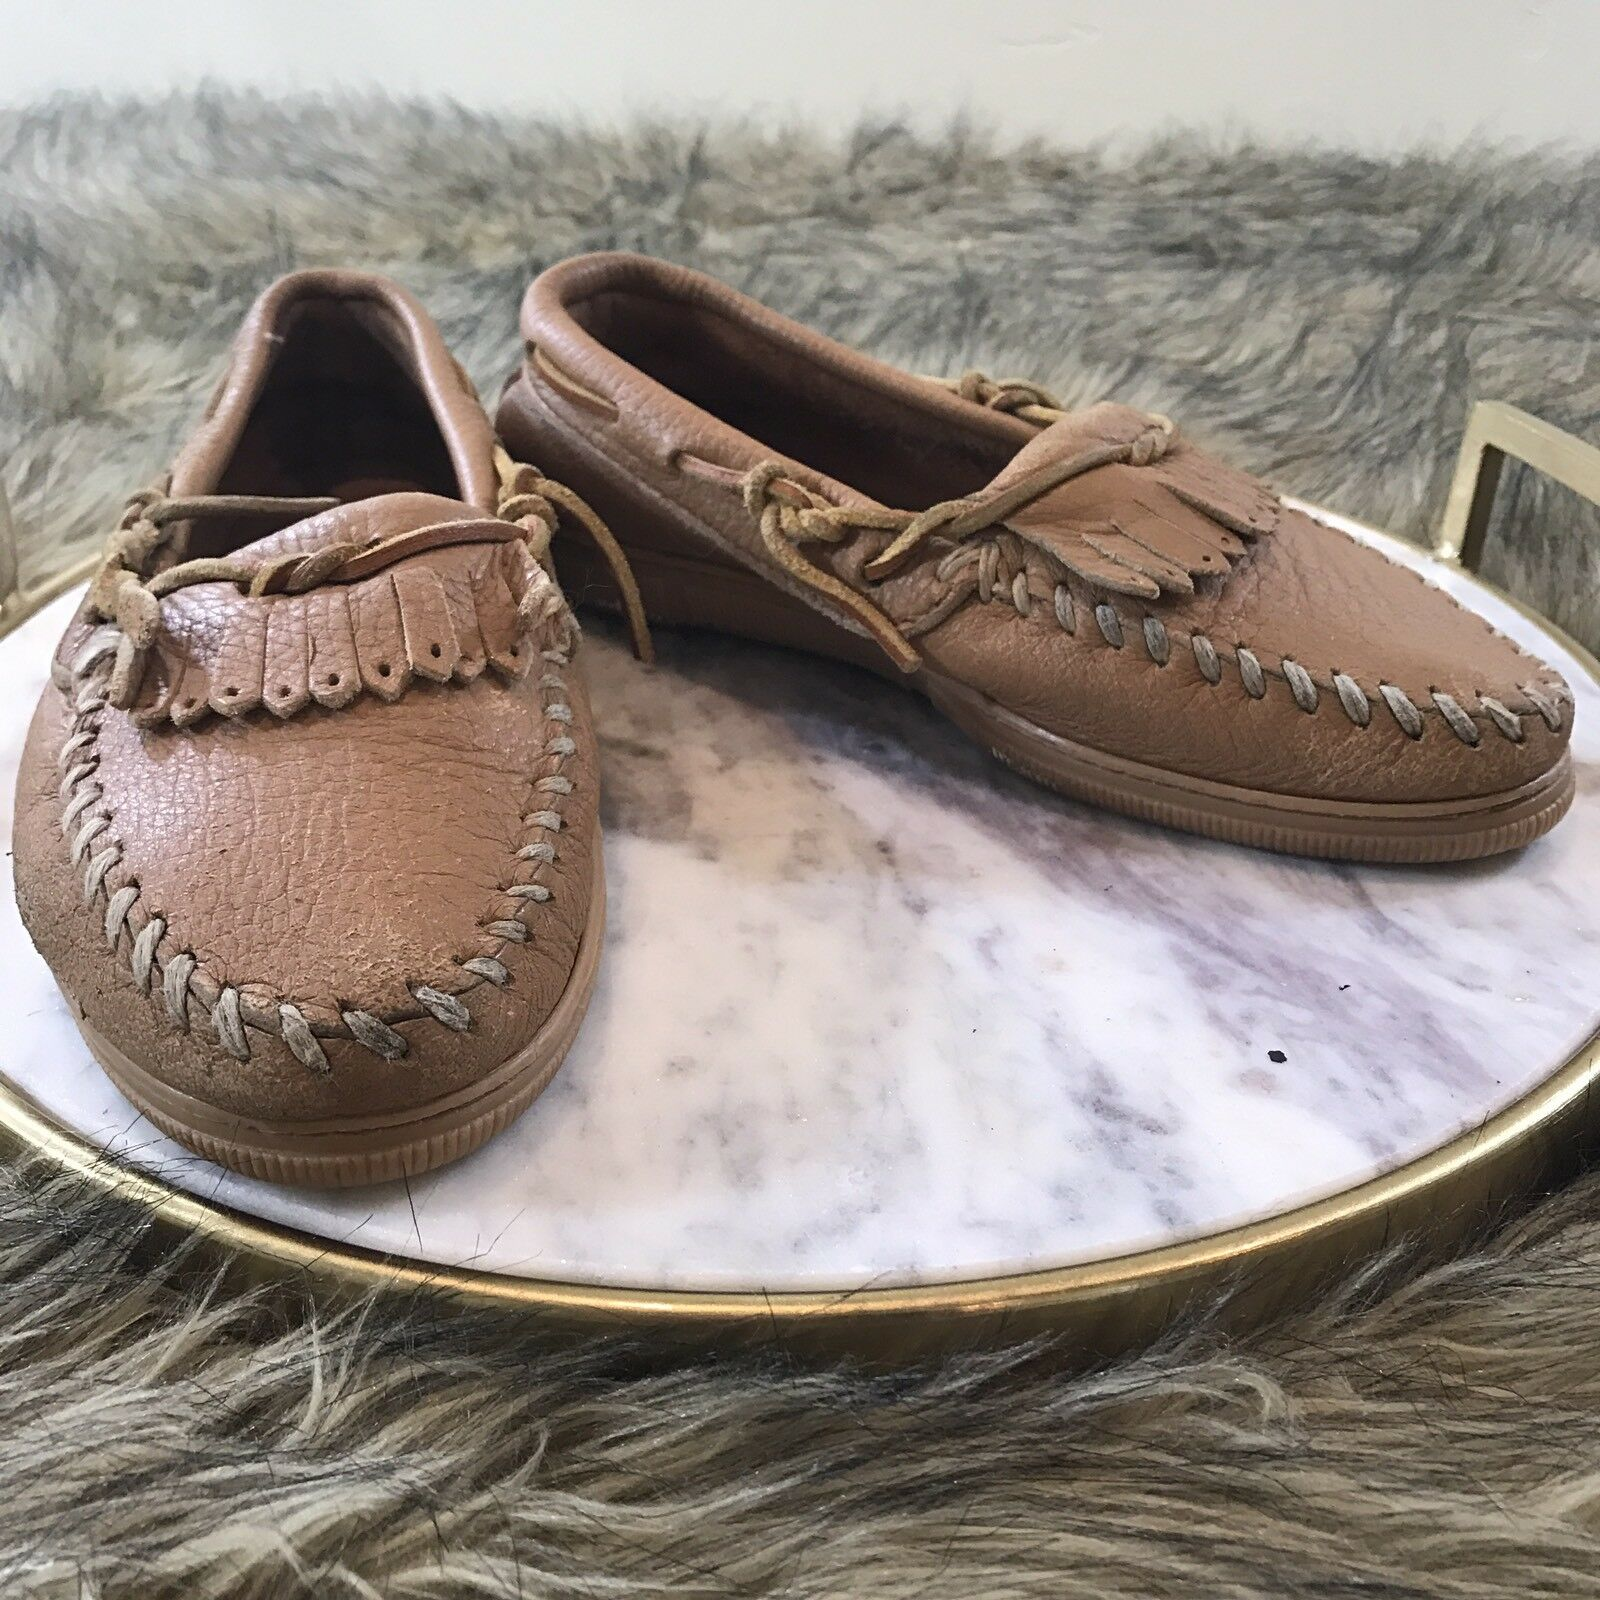 Minnetonka Women's M Sz 5 / 6 M Women's Tan Leather Fringe Moccasin Loafer Shoes 96a77a